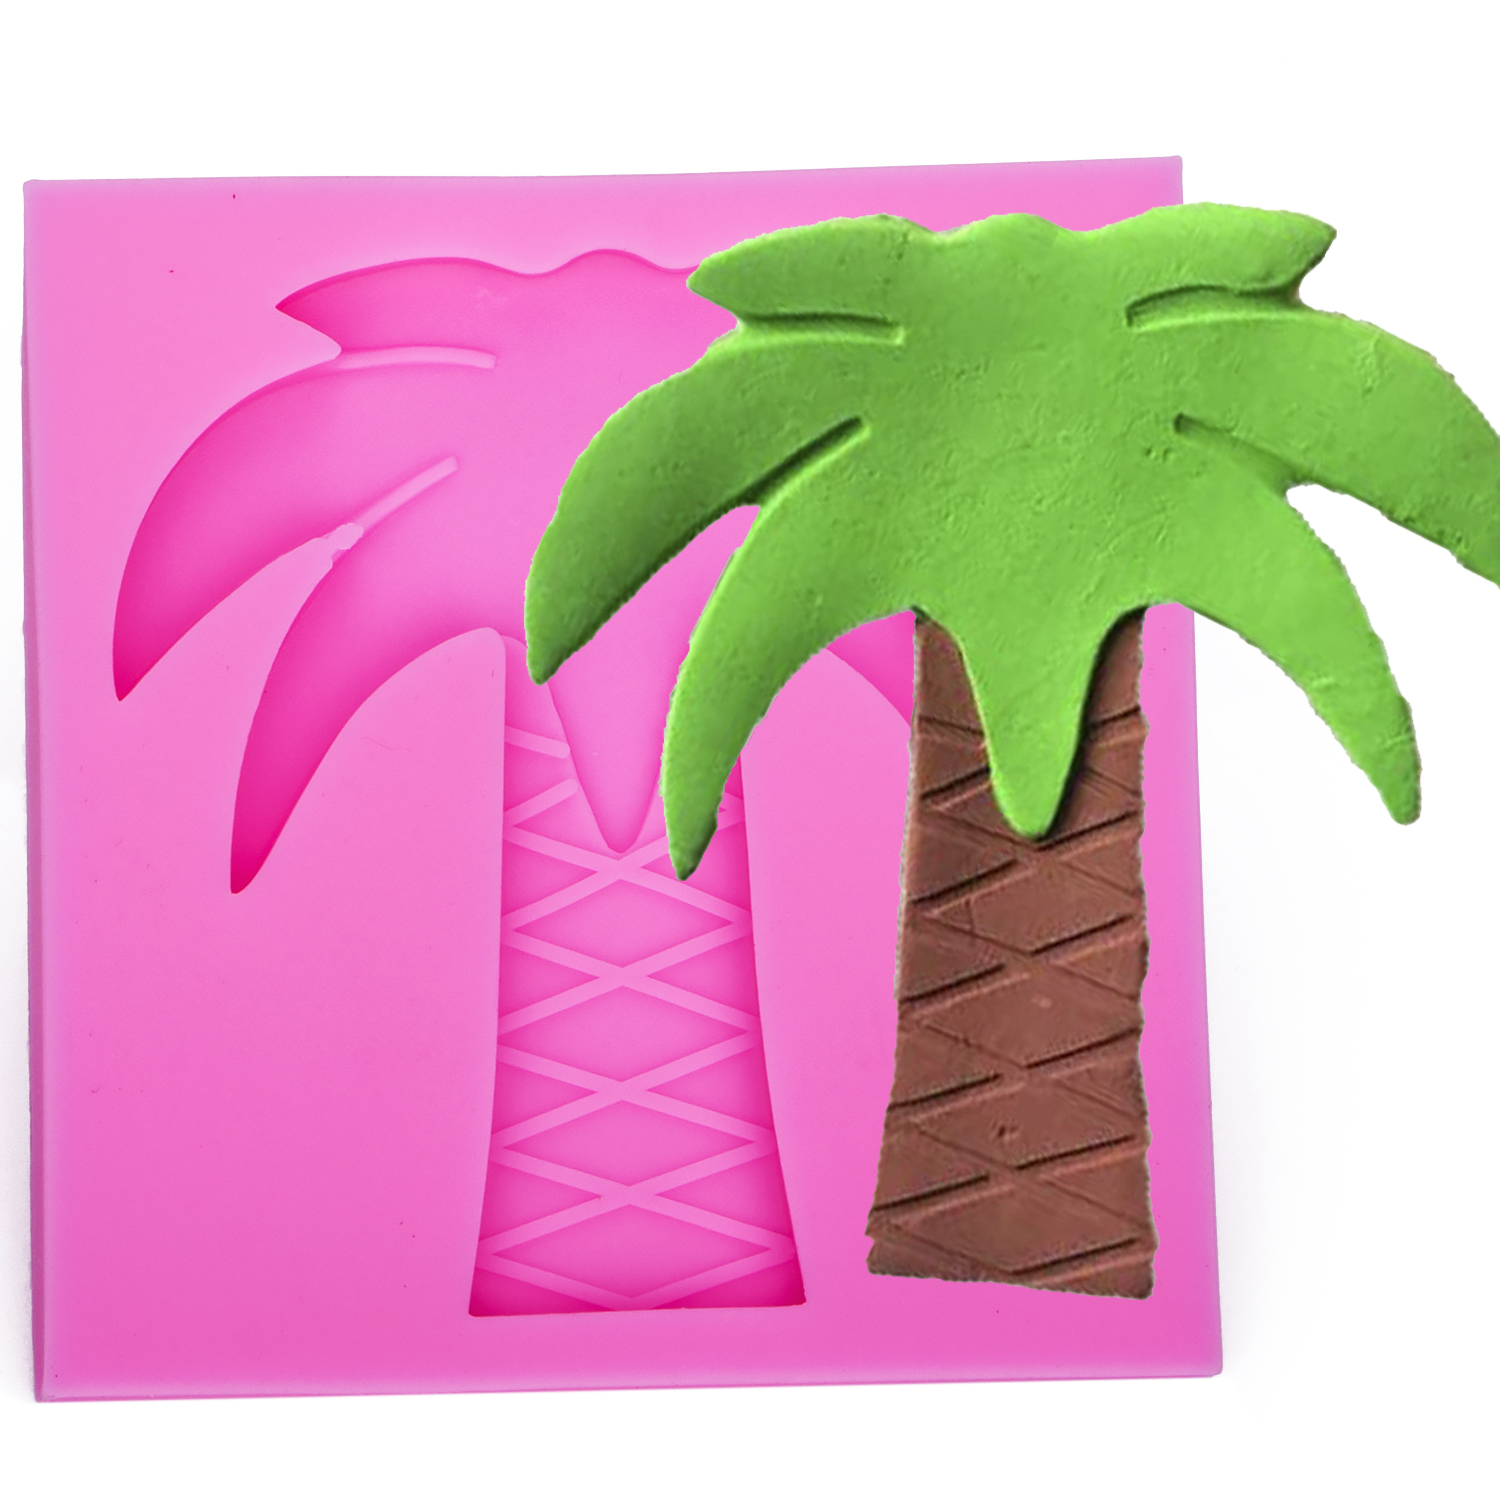 3D Reverse sugar molding silicone mold coconut tree shaped for polymer clay molds pastry candy fondant cake decoration tool 1192